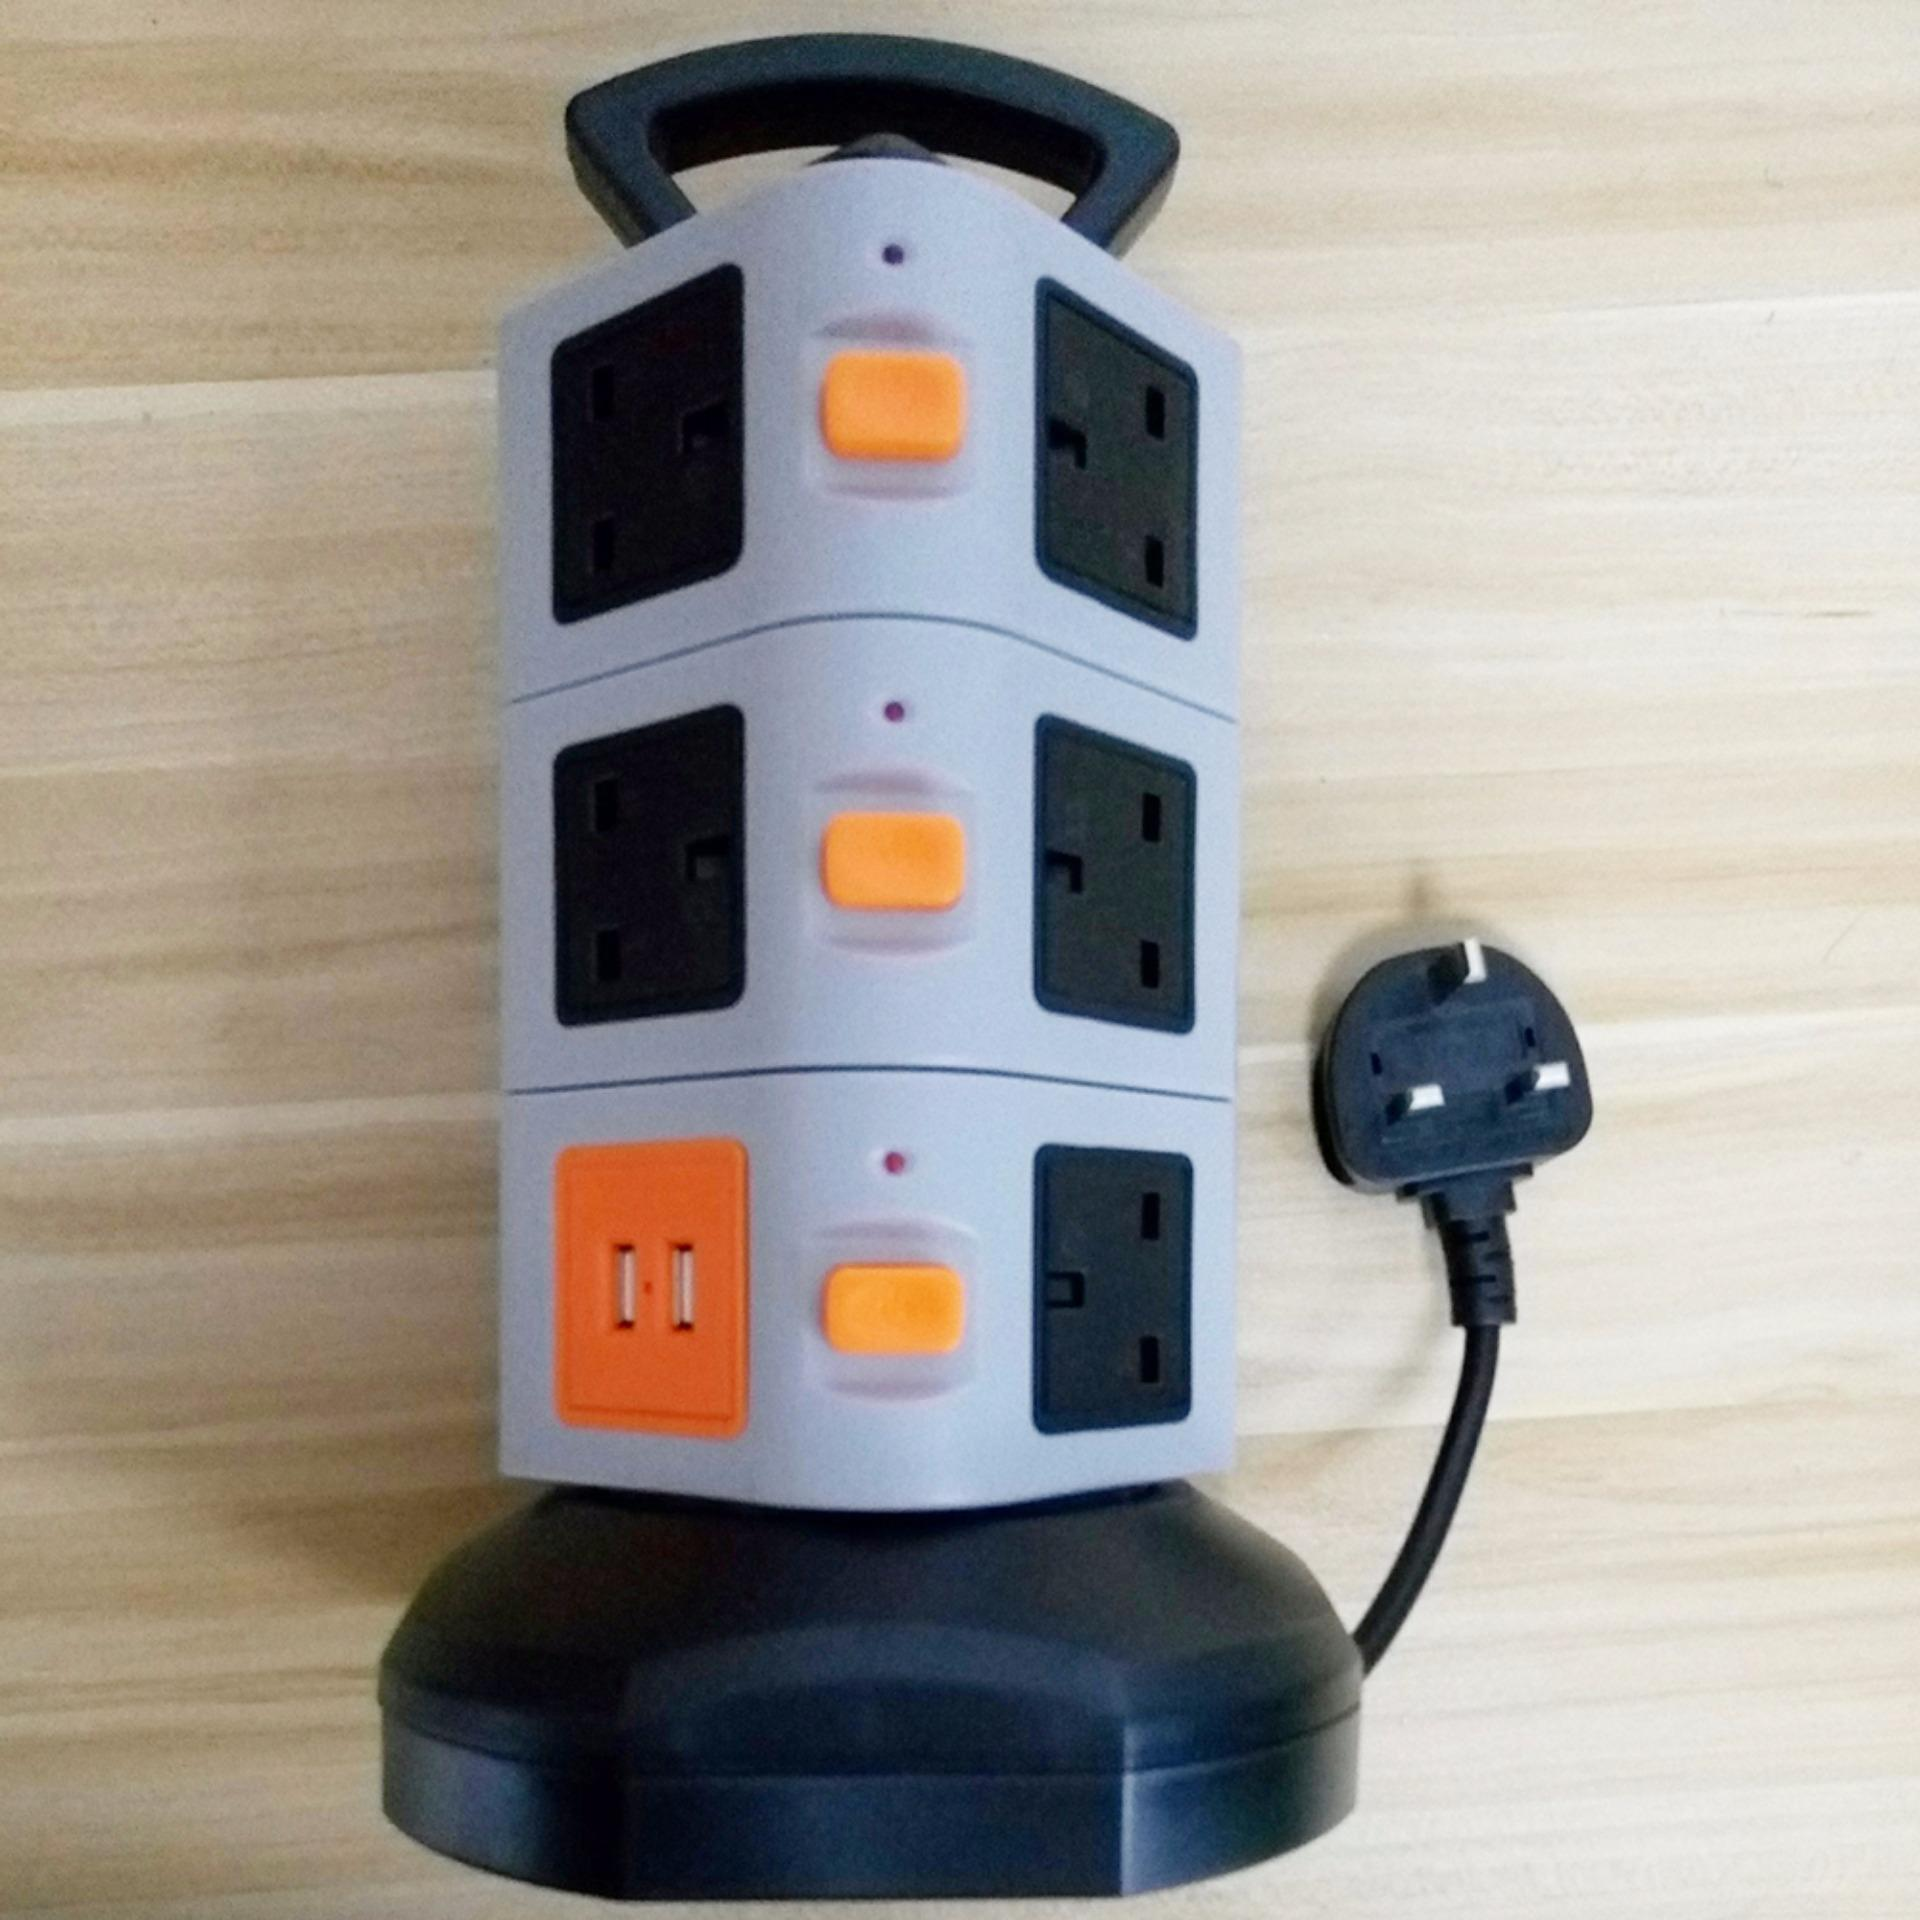 3 Layer Tower Smart Electrical Socket with 2 USB charger UK Output ...